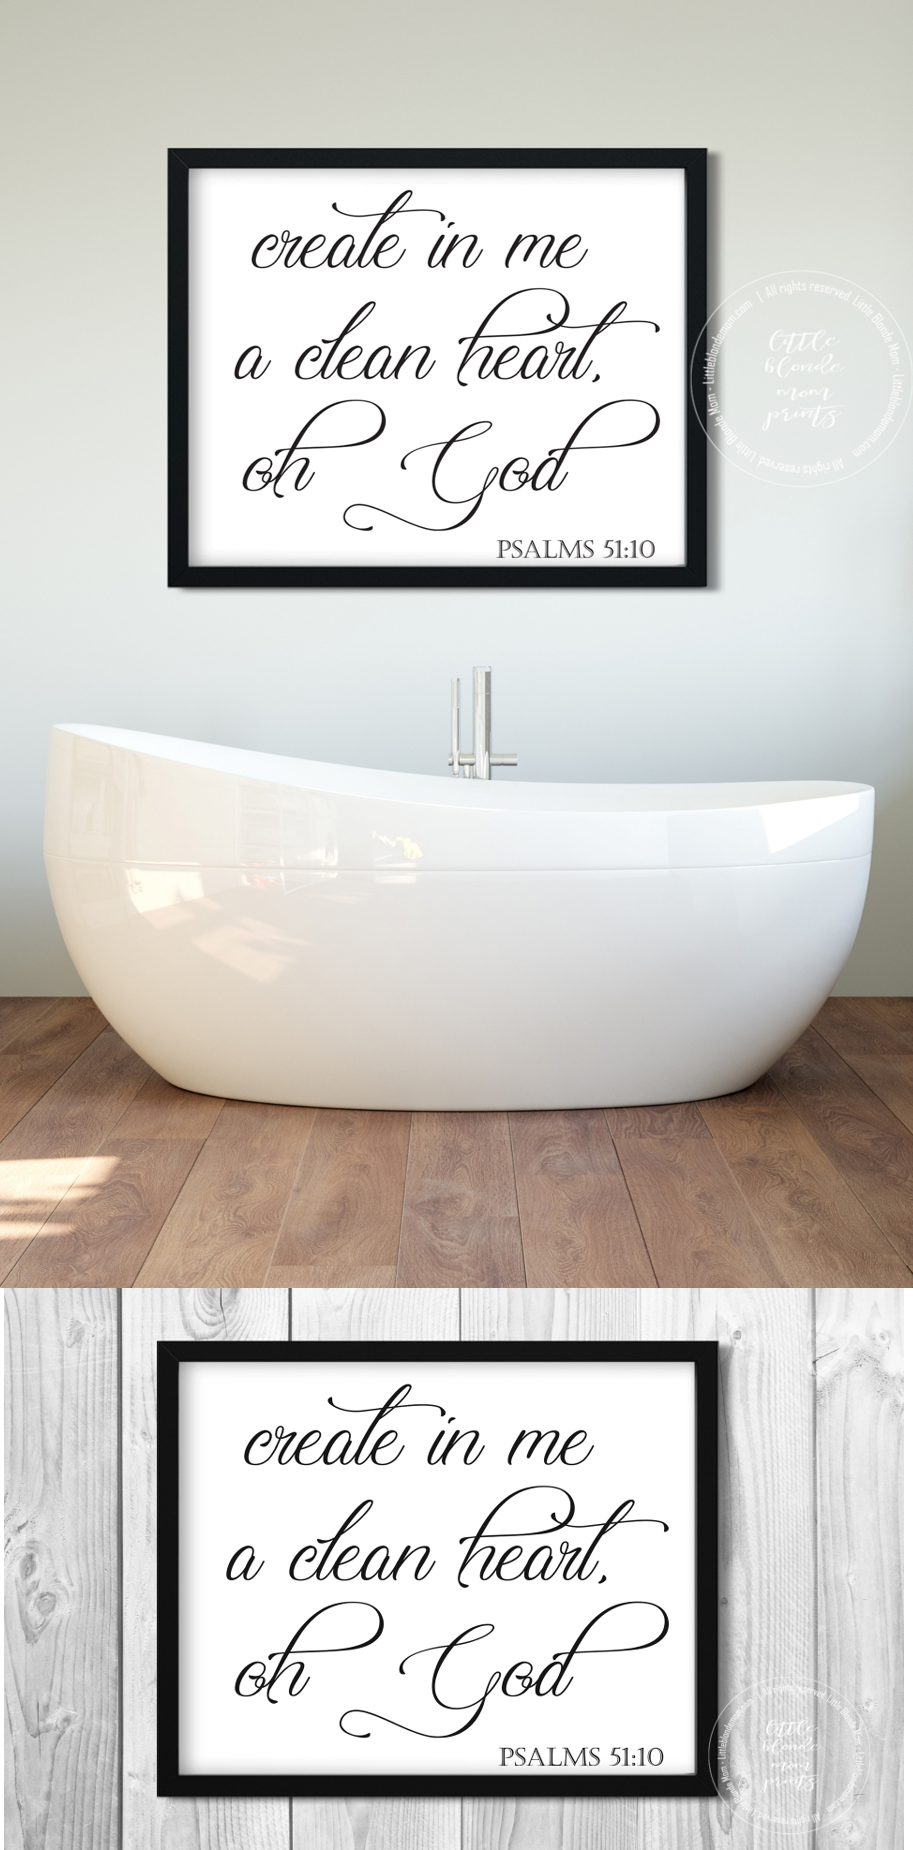 Bathroom Wall Art Bible Verse Scripture Christian Decor Etsy Bathroom Wall Art Bathroom Art Decor Christian Decor